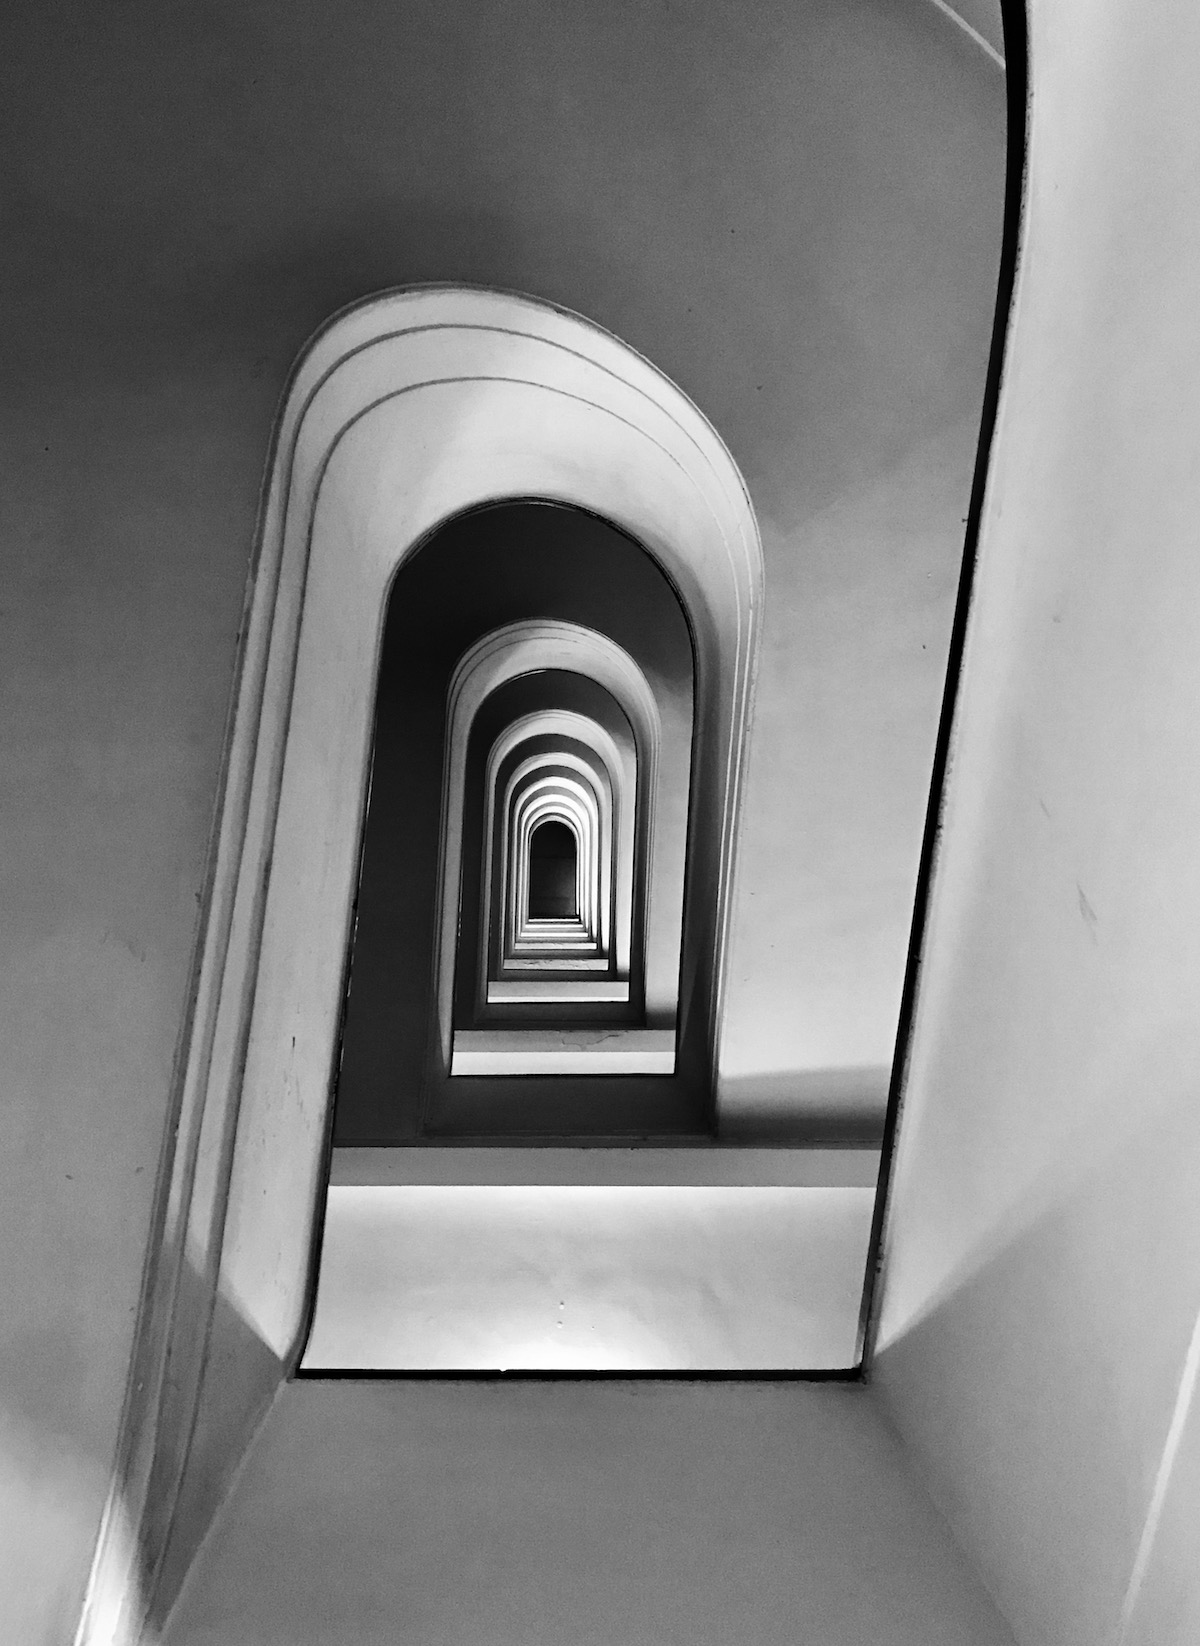 Architectural iPhone Photography